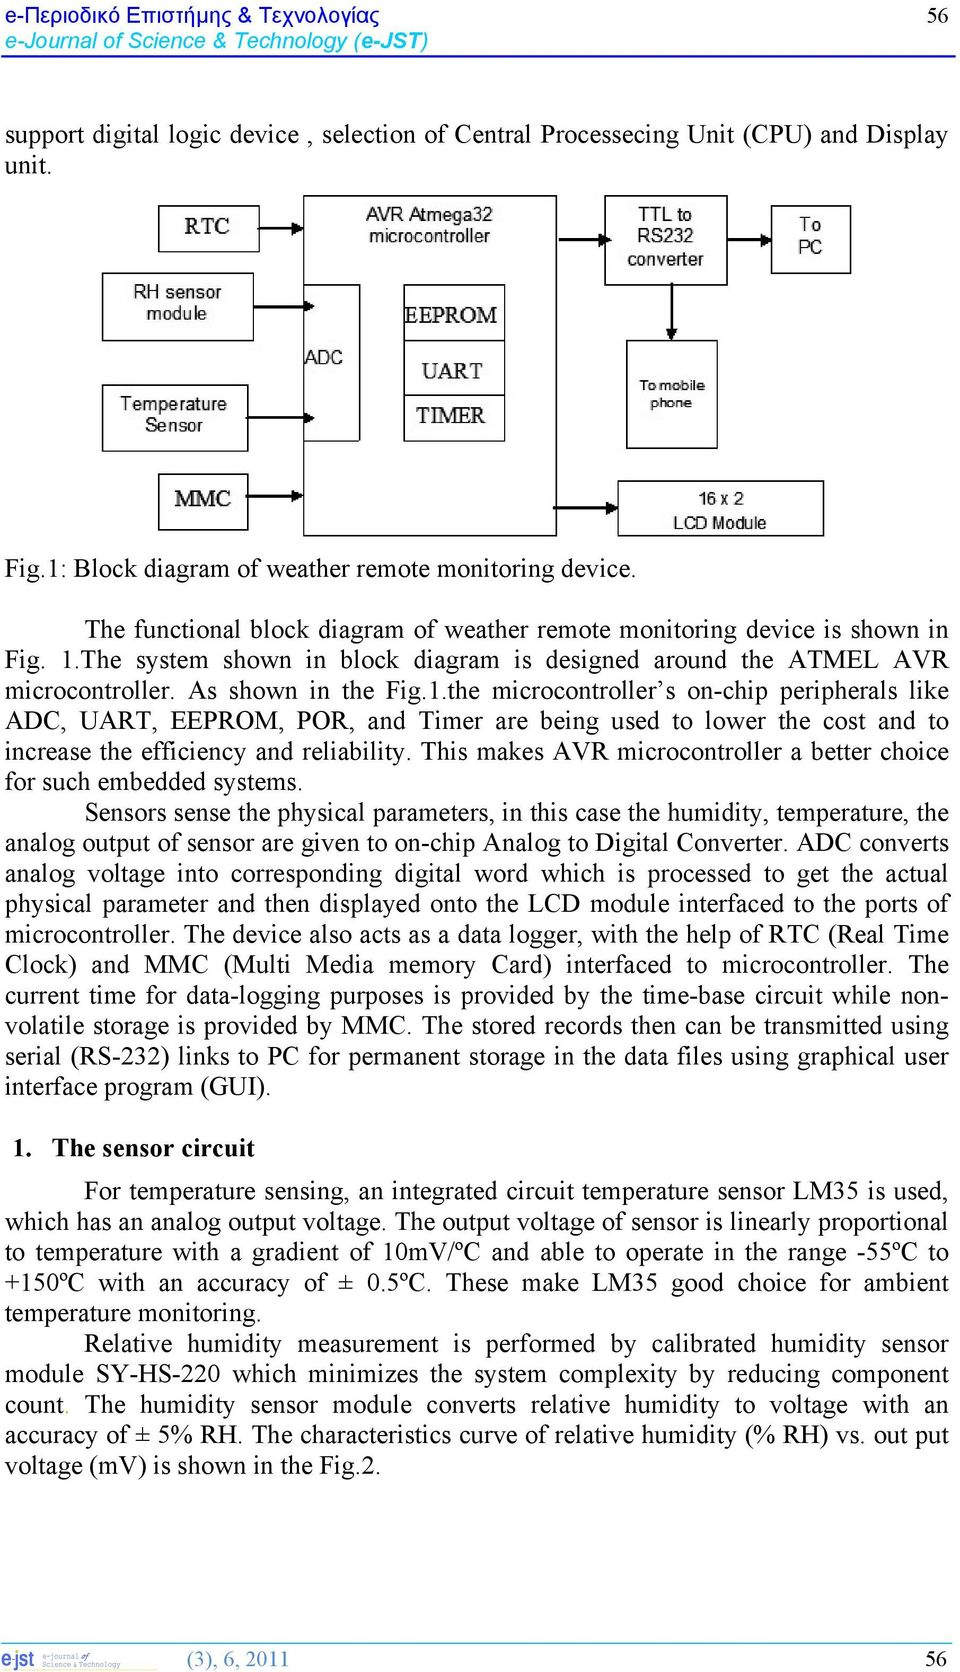 The system shown in block diagram is designed around the ATMEL AVR microcontroller. As shown in the Fig.1.